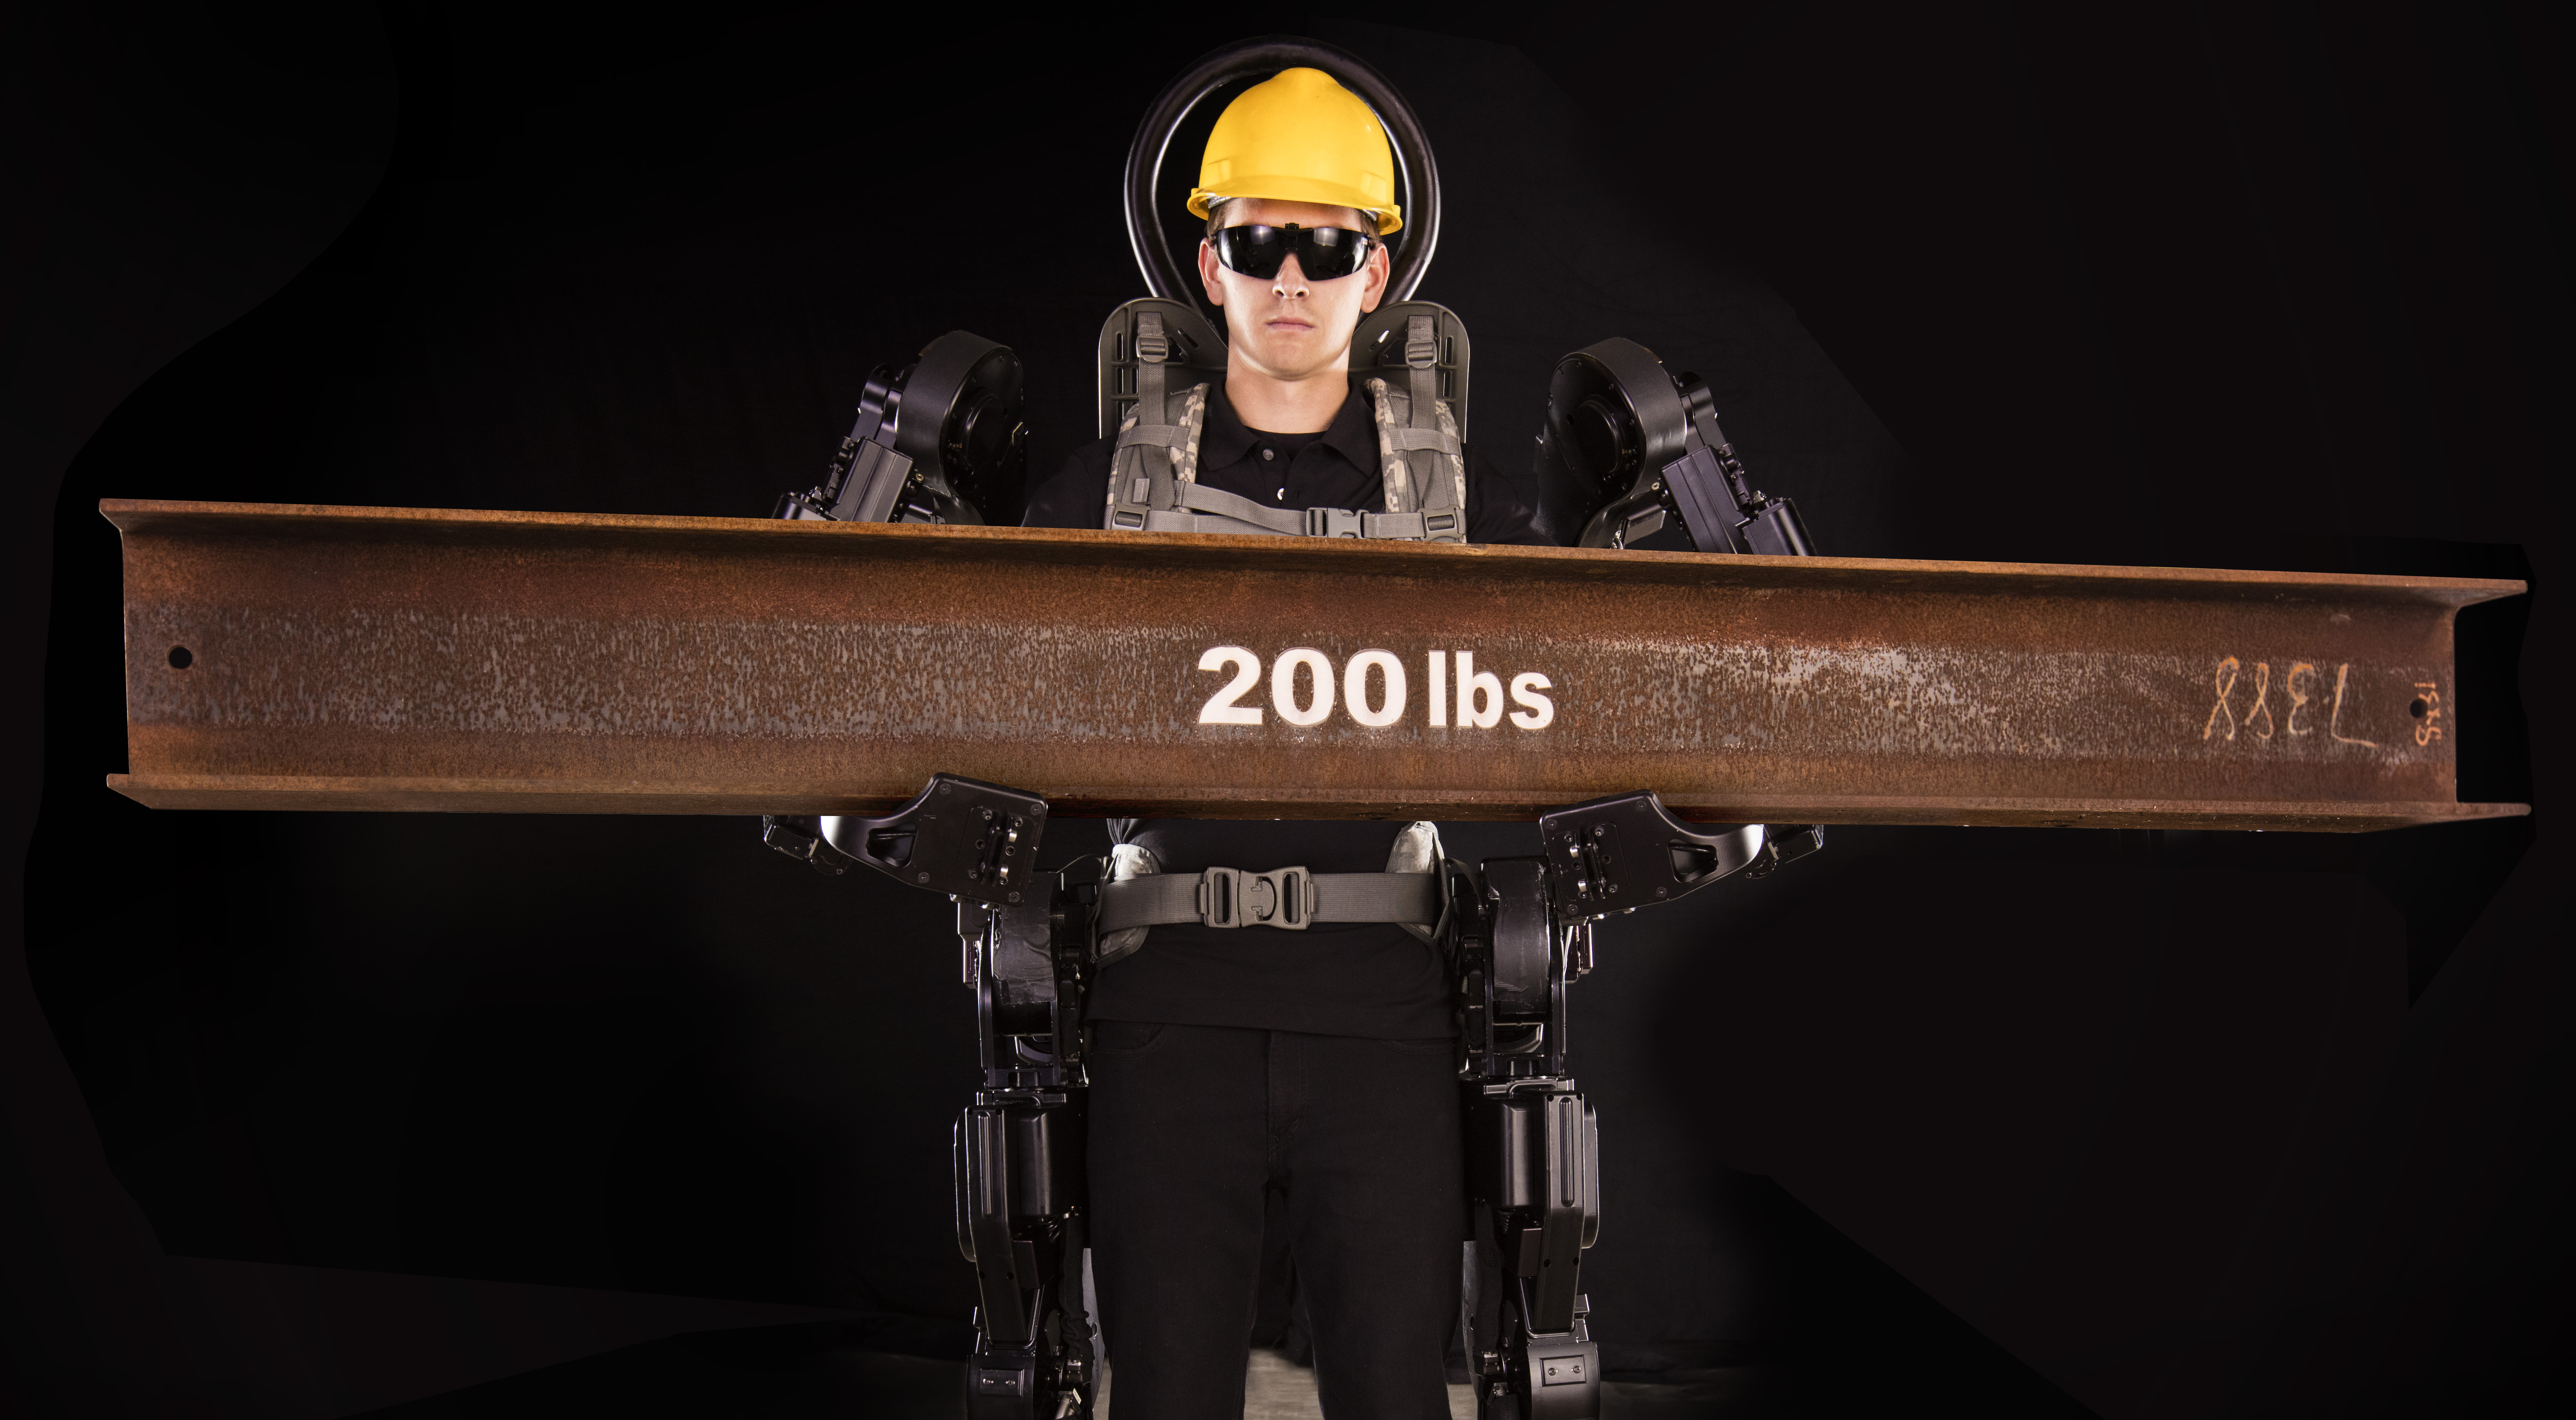 The Guardian XO suit enables its pilot to easily lift up to 200 pounds, even while wearing sunglasses. (Sarcos Robotics)